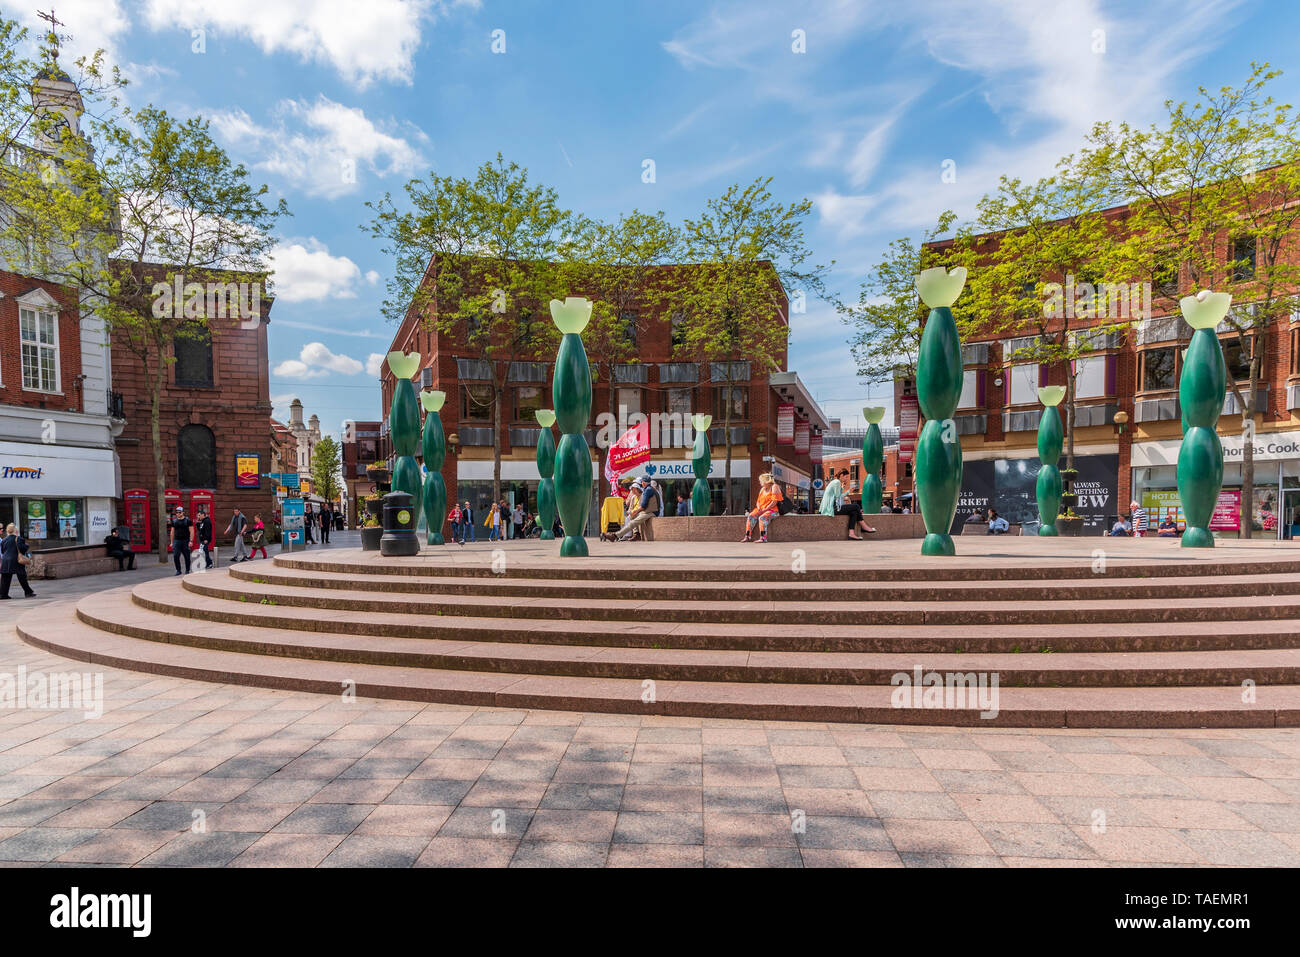 Warrington town centre. Skittles and fountain. - Stock Image